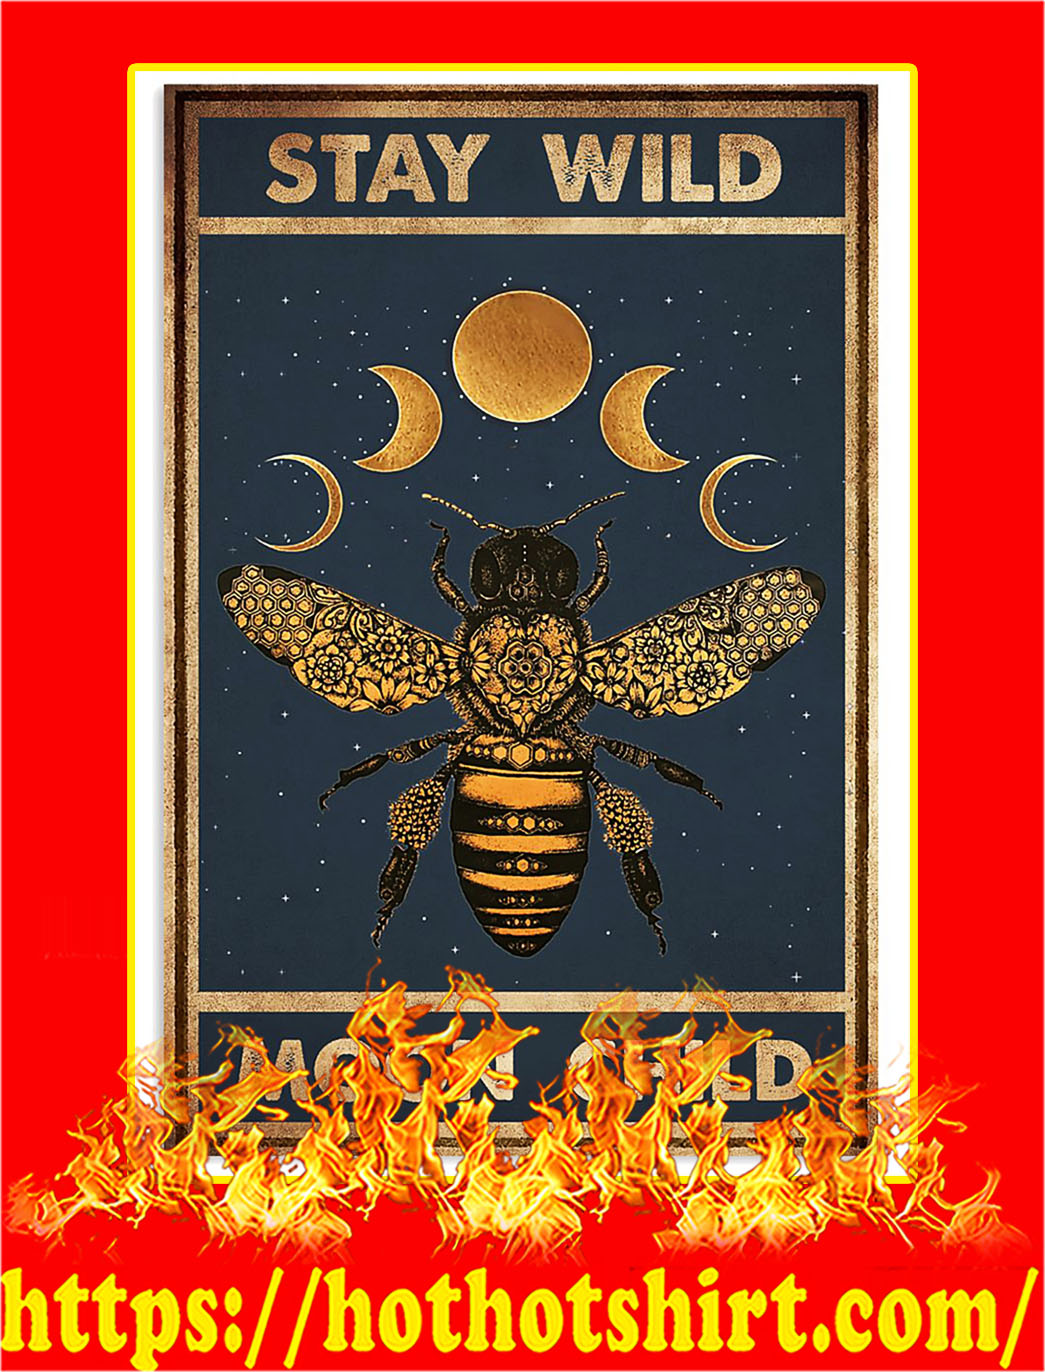 Stay wild moon child bee poster - A2